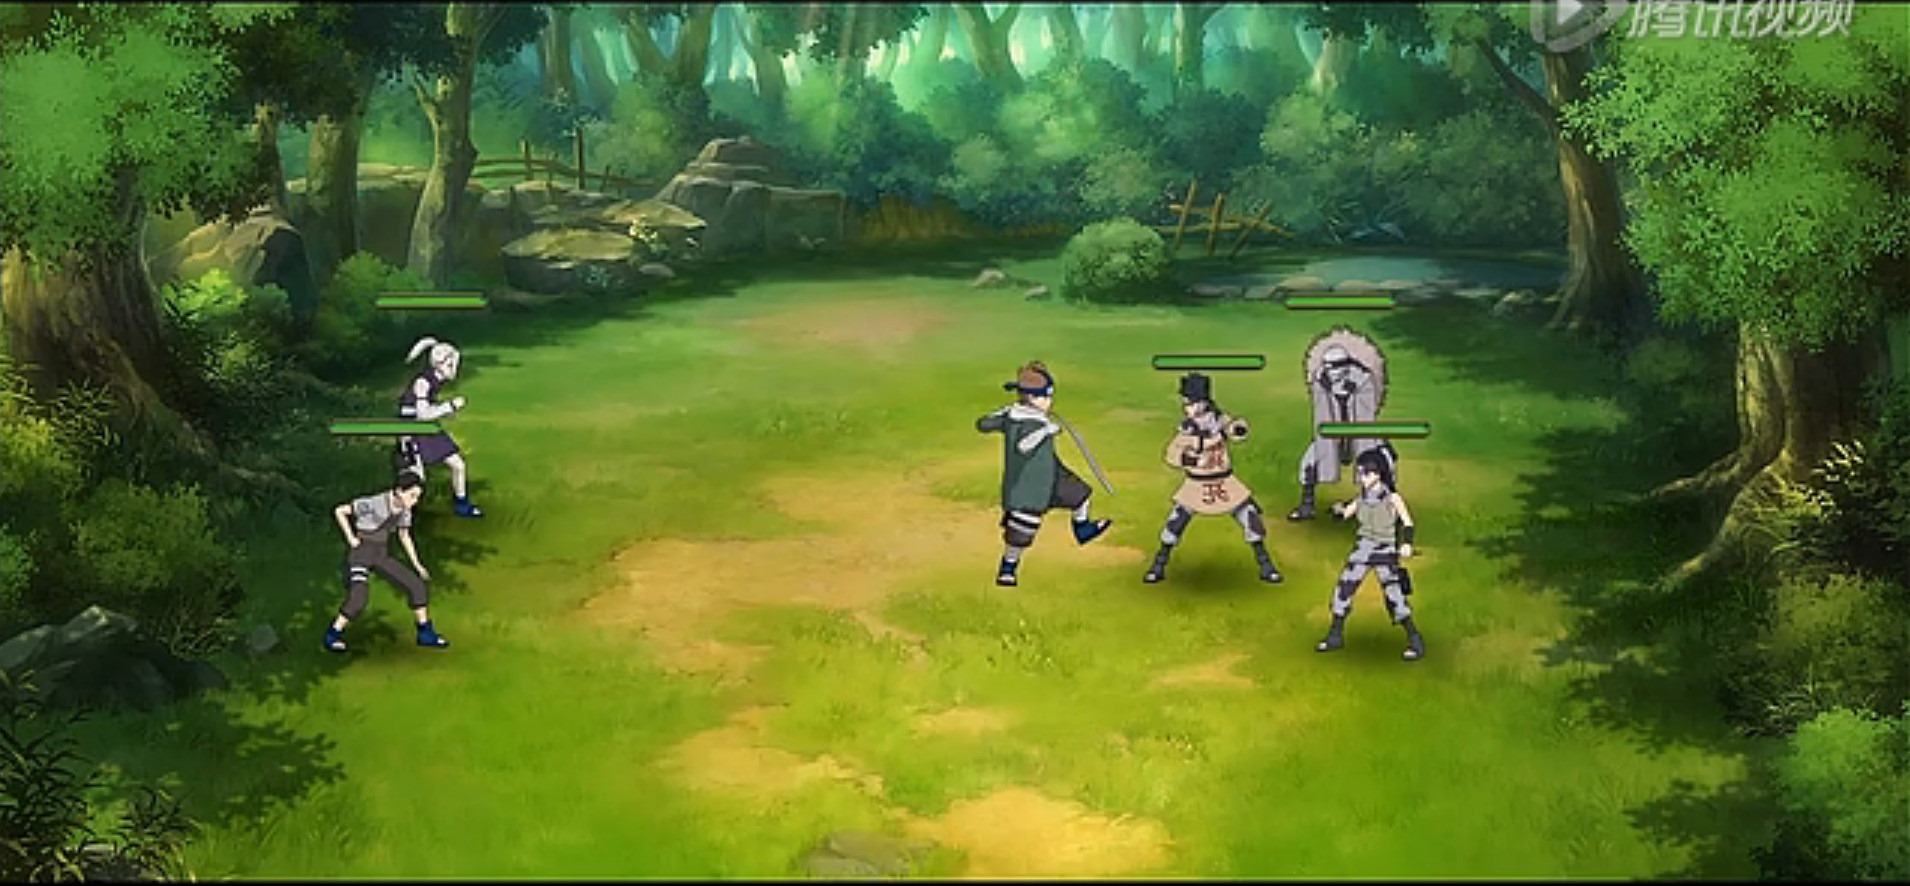 6souls games online naruto least that above video clear what will three team canon pre-defined teams there such game which shows though isnt another other some going like shot 2014 with have looks enough interestingly action theres universeif chain-combo beta page falls where guess badly albeit english words sign-in beasties oyaji